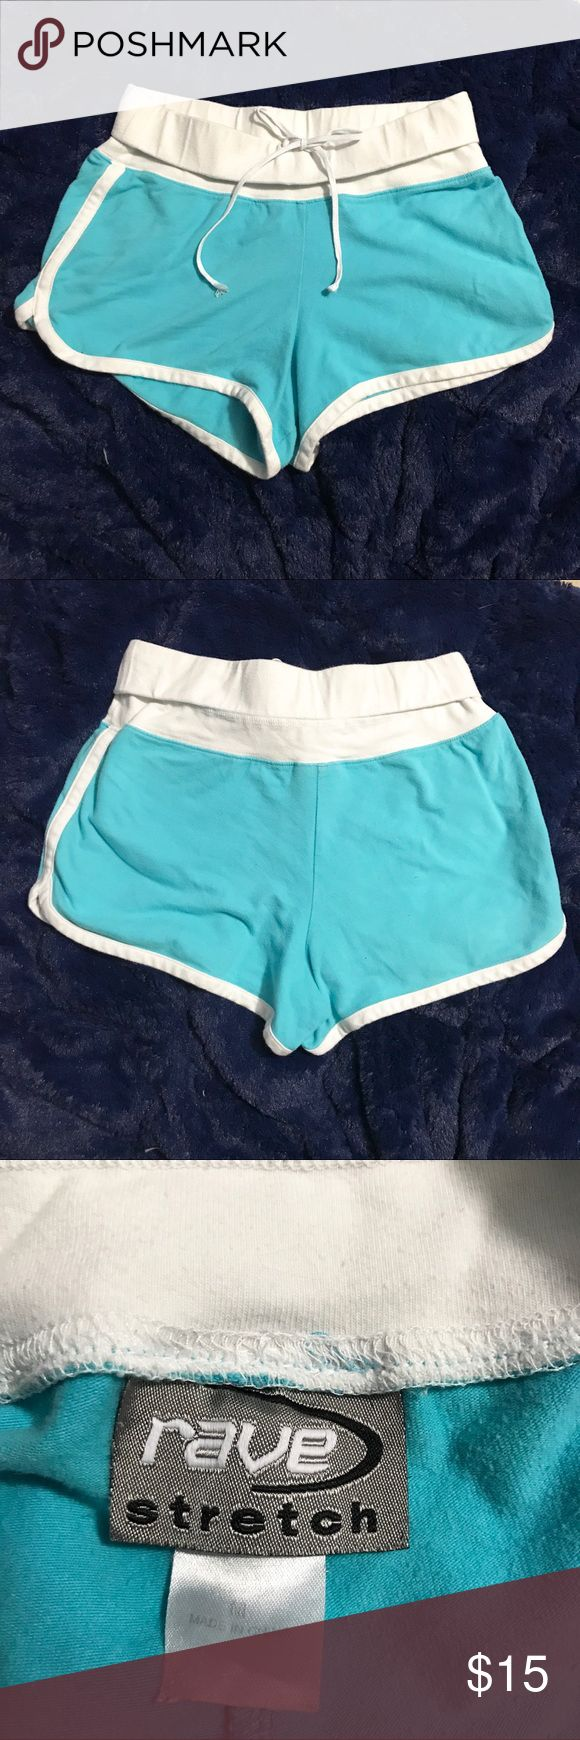 Rave Stretch Aqua Shorts 95% cotton. 5% Spandex. Aqua Shorts. Tag is a little warn. Rope tie is fraying near ends. Size is medium. Pre-loved. Neon. Rave Stretch Shorts